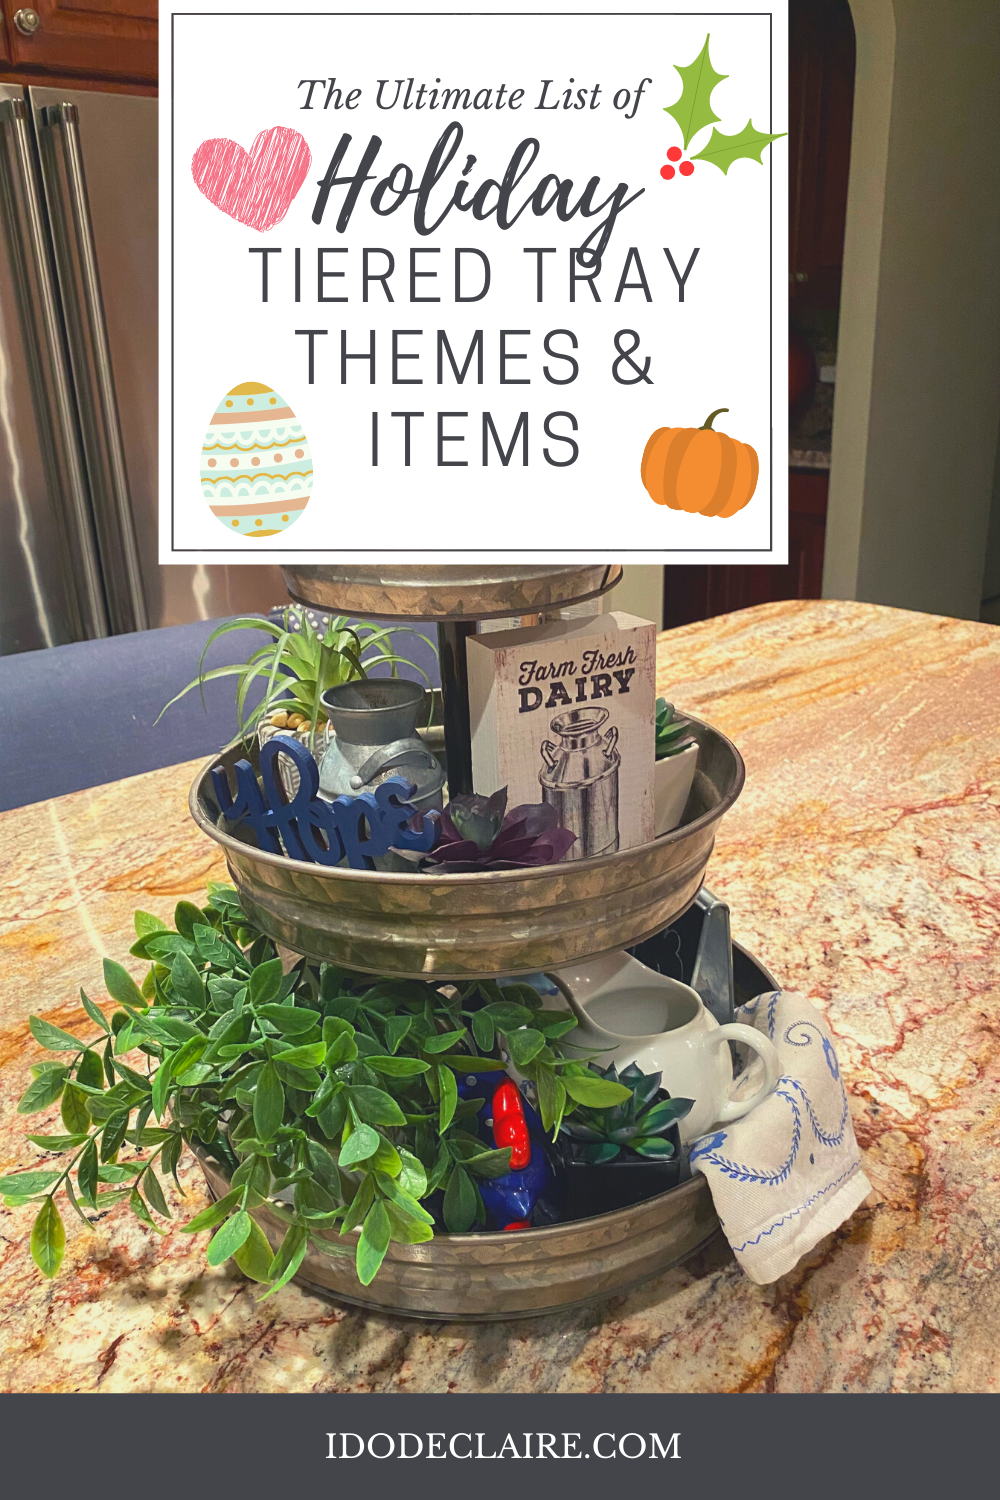 The Ultimate List of Tiered Tray Items for Holidays